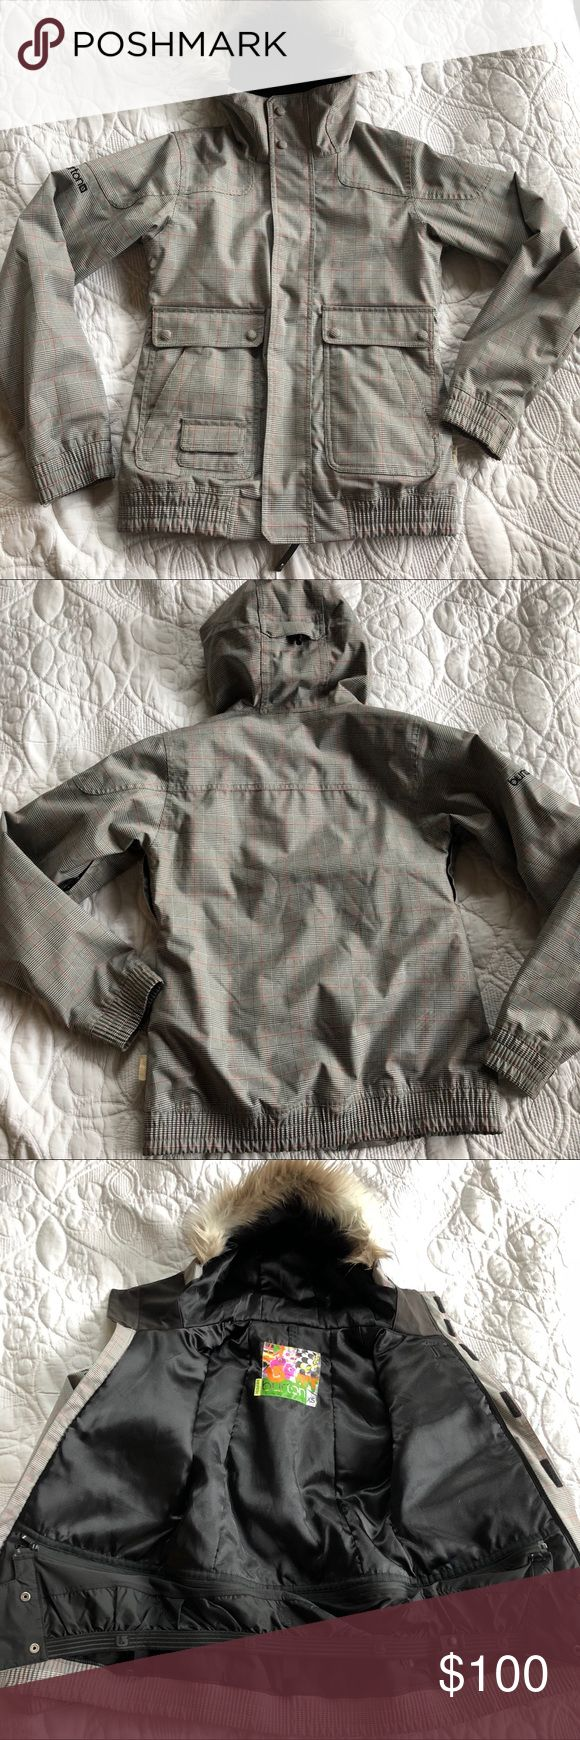 XS women's Burton snowboarding jacket Like new hardly used Burton snowboarding jacket with faux fur lined hood. Had tons of pockets (hidden and seen) very warm. Measurements are in pics. There are 2 Very small spot on the jacket (also in pics) smoke free home. Open to offers. Burton Jackets & Coats